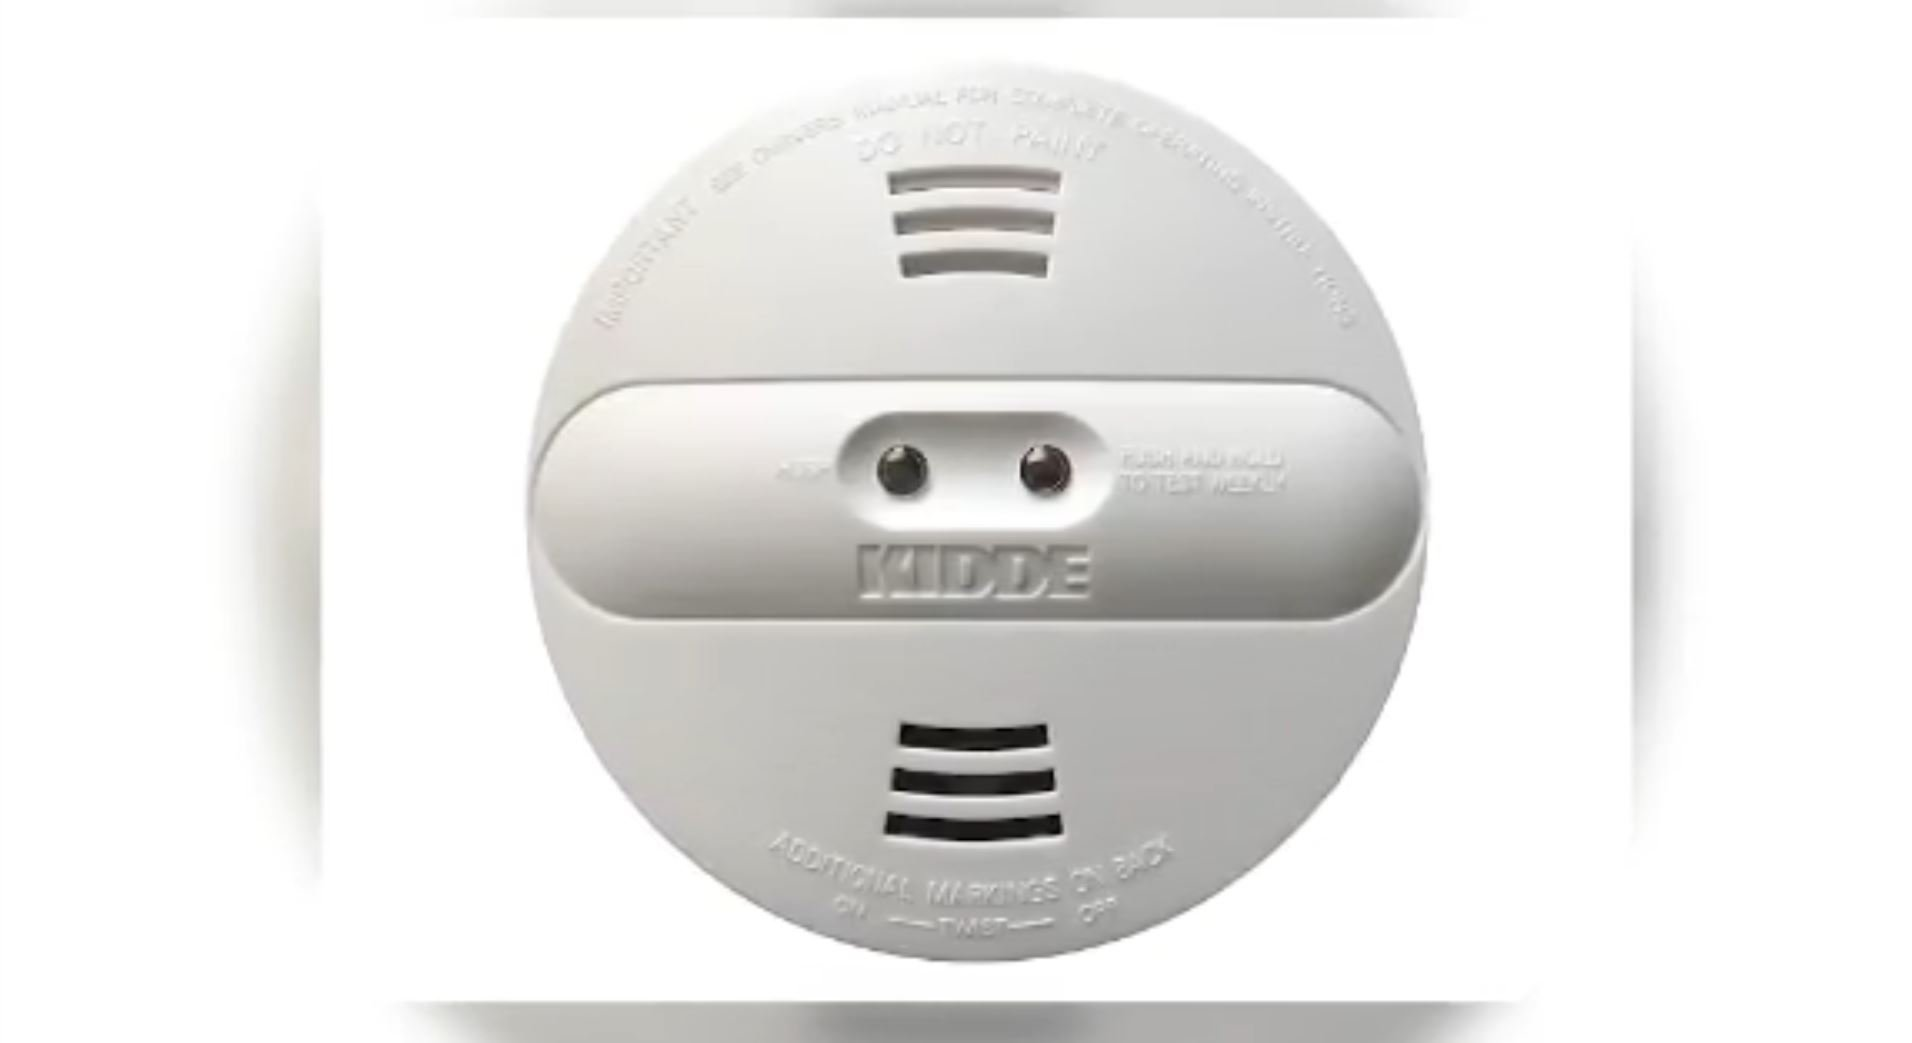 Check your smoke alarm before it's too late